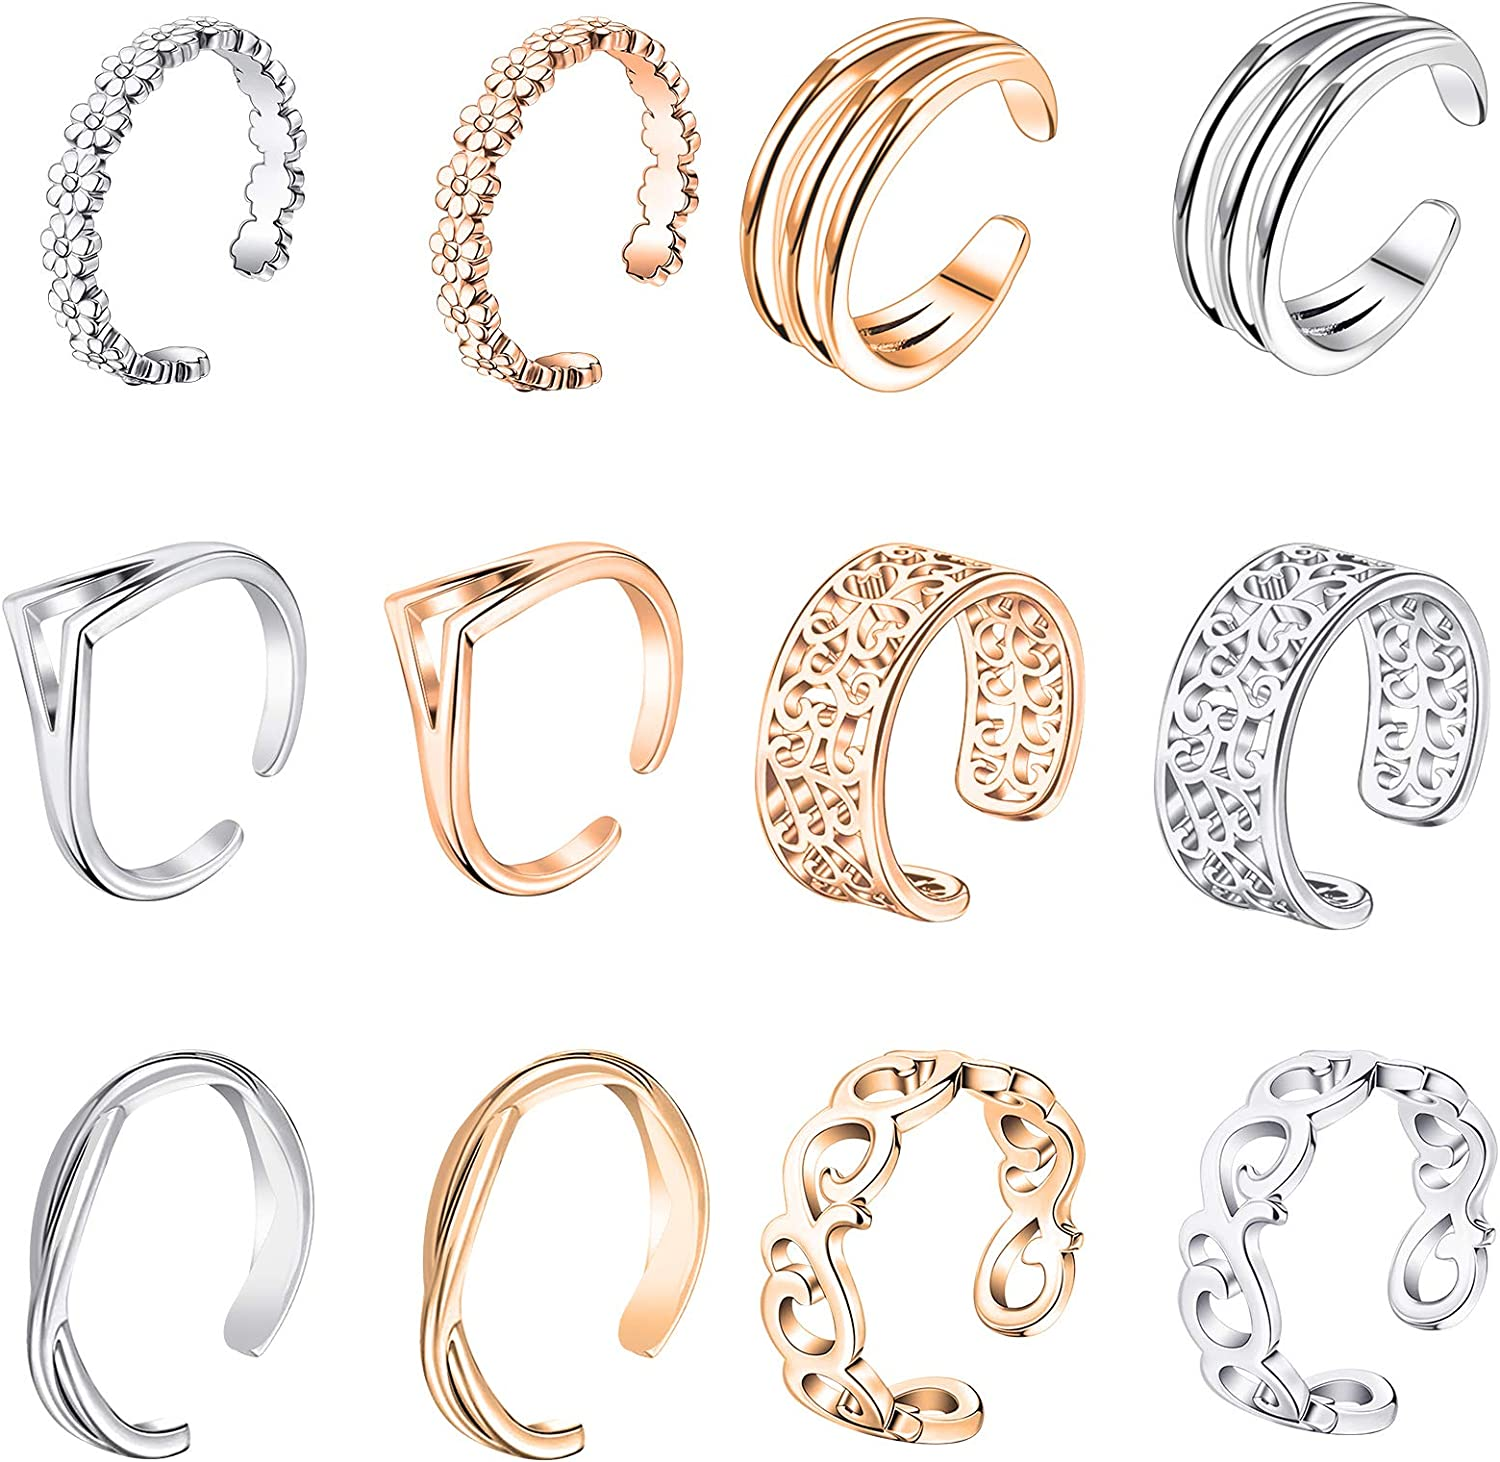 ONESING 12 Pcs Toe Rings for Women Silver Rose Gold Adjustable Finger Foot Rings Summer Beach Jewelry Finger Foot Jewelry with 1 Flanneal Bag